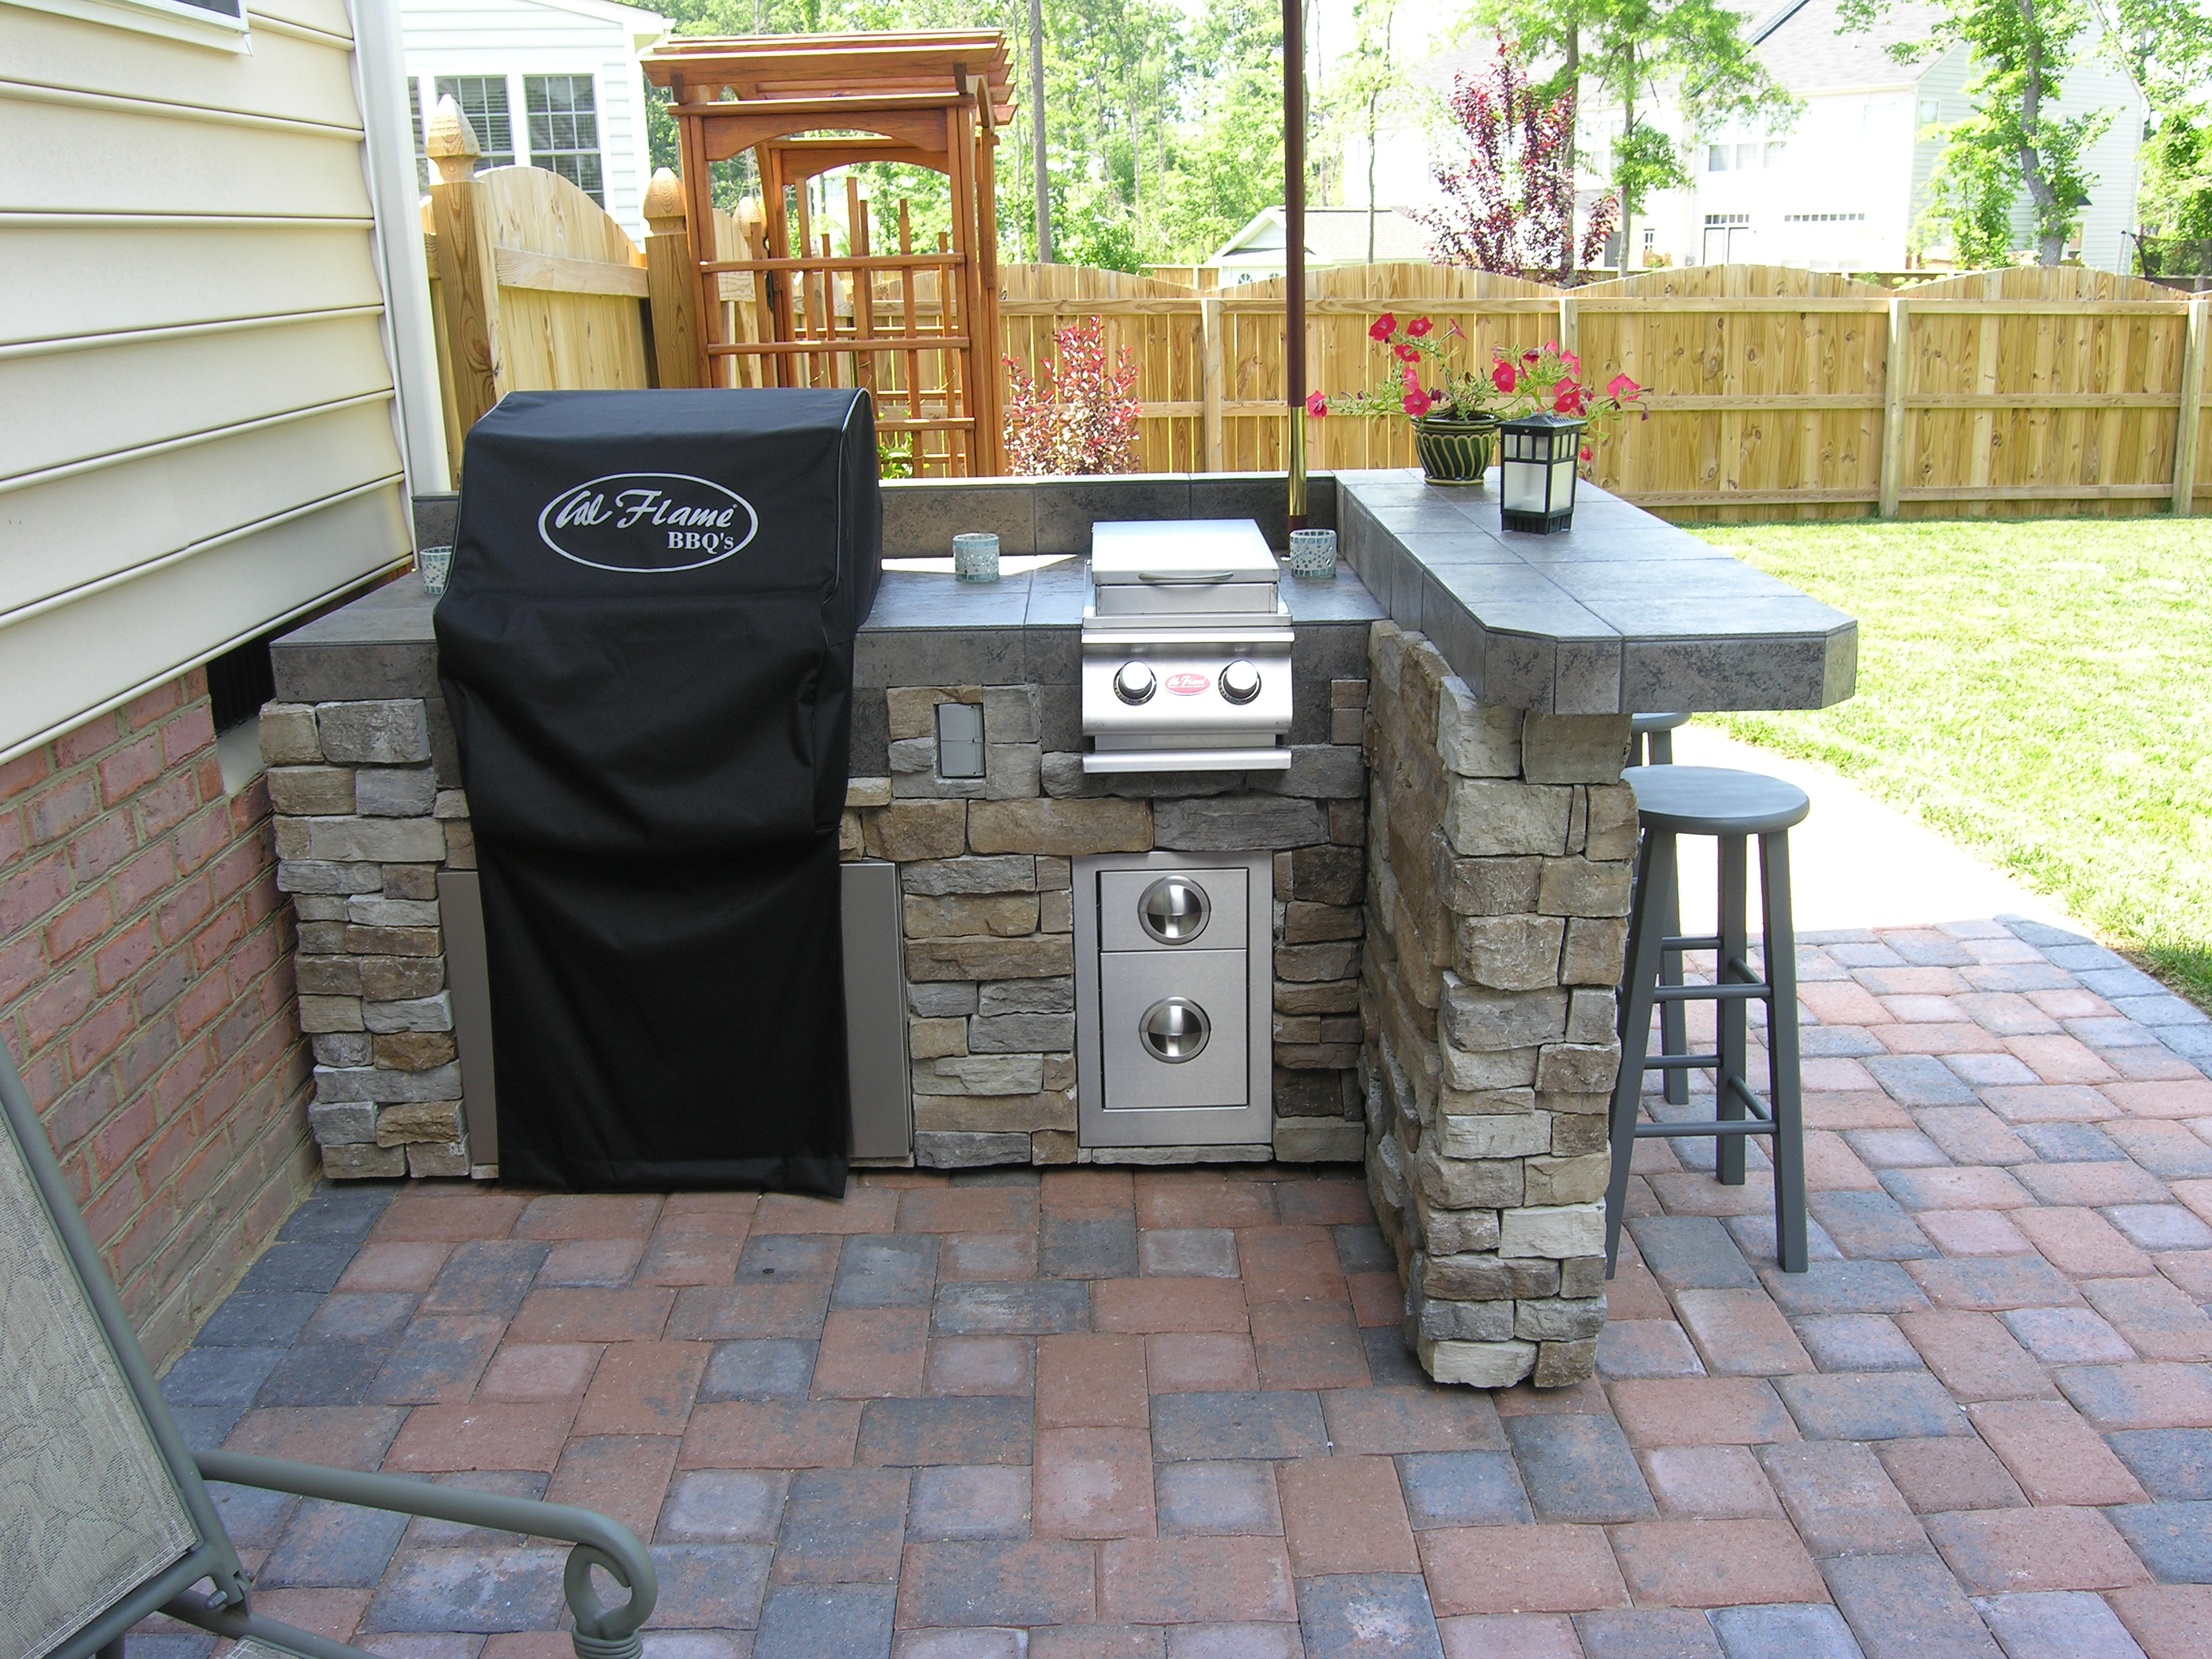 Bbq Grill Design Ideas full outdoor kitchen design ideas 25 Best Ideas About Built In Bbq On Pinterest Built In Bbq Grill Built In Grill And Outdoor Grill Area